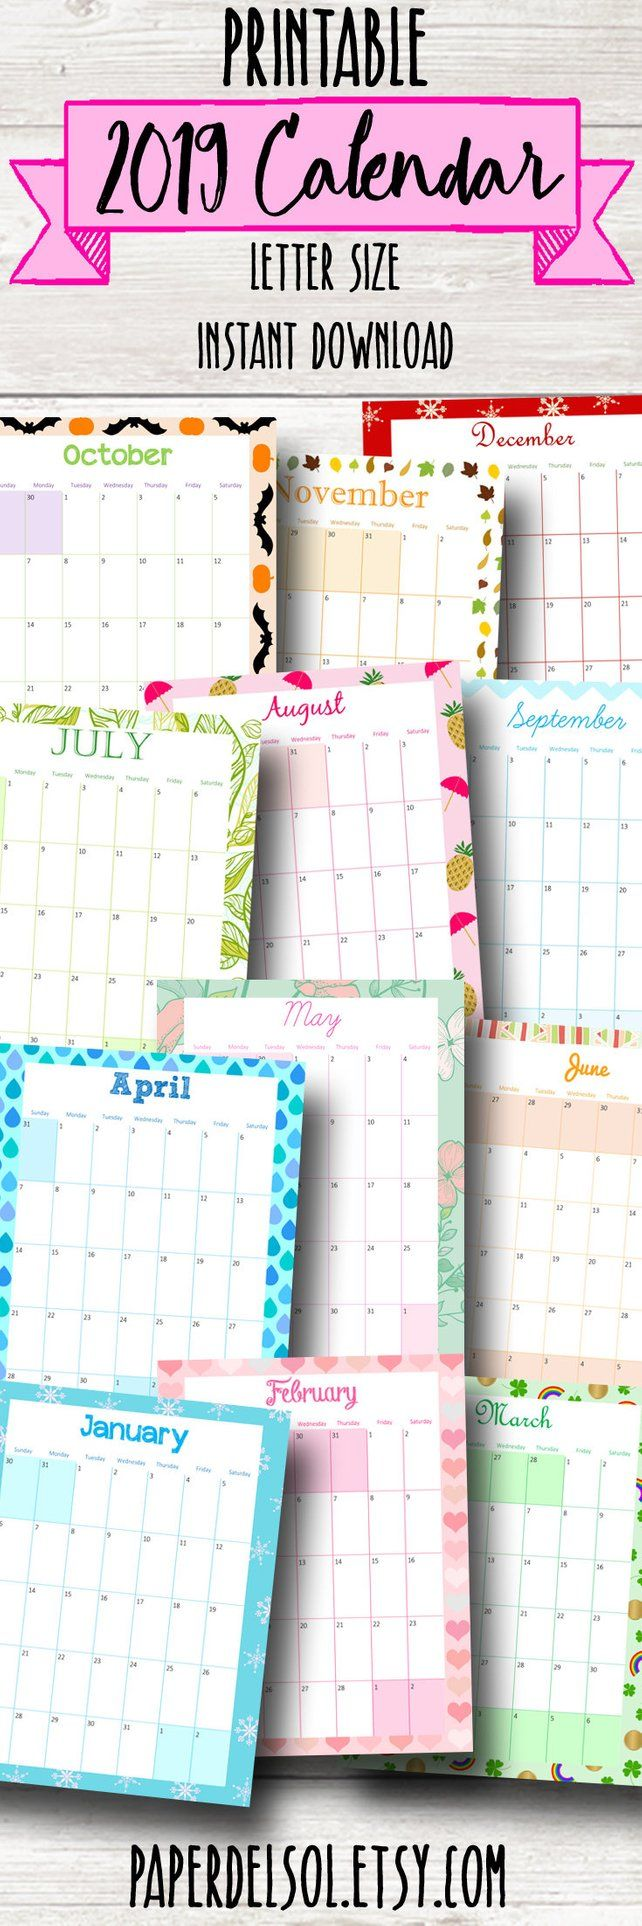 Themed Printable Calendar 2019 Monthly Planner 2019 Wall Calendar